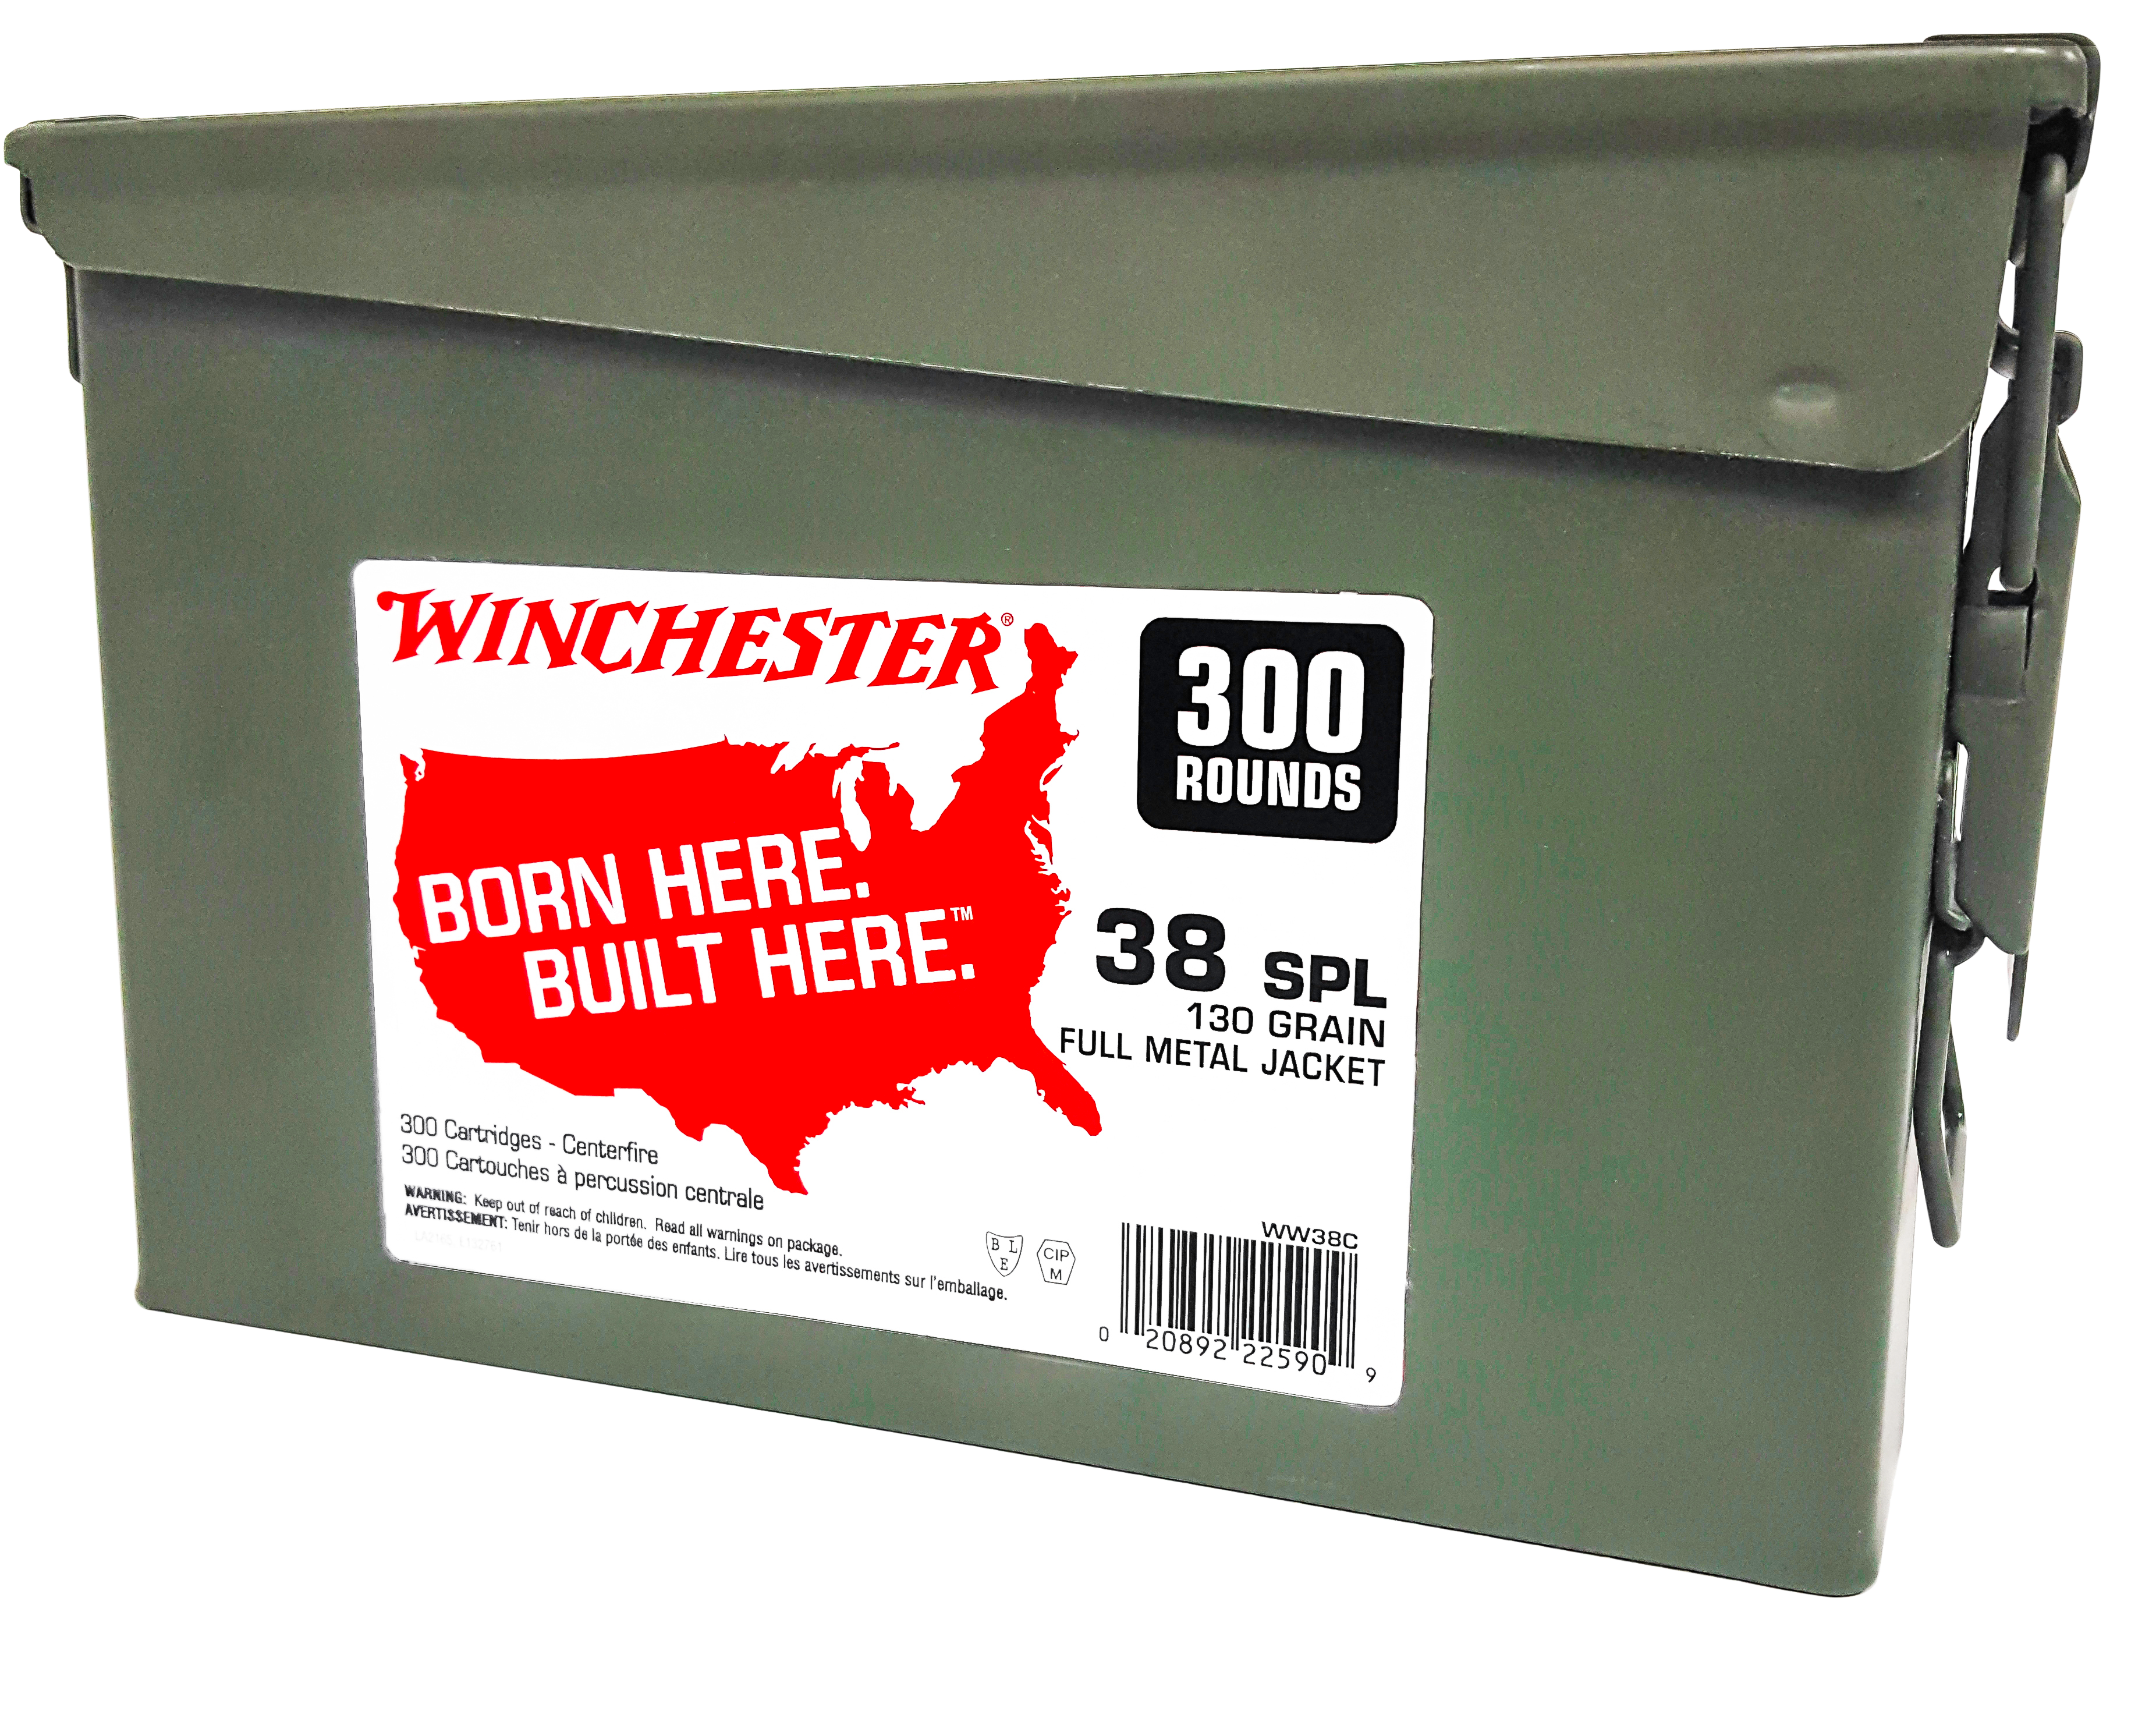 Winchester USA Ammunition 38 Special 130GR Full Metal Jacket Per 300